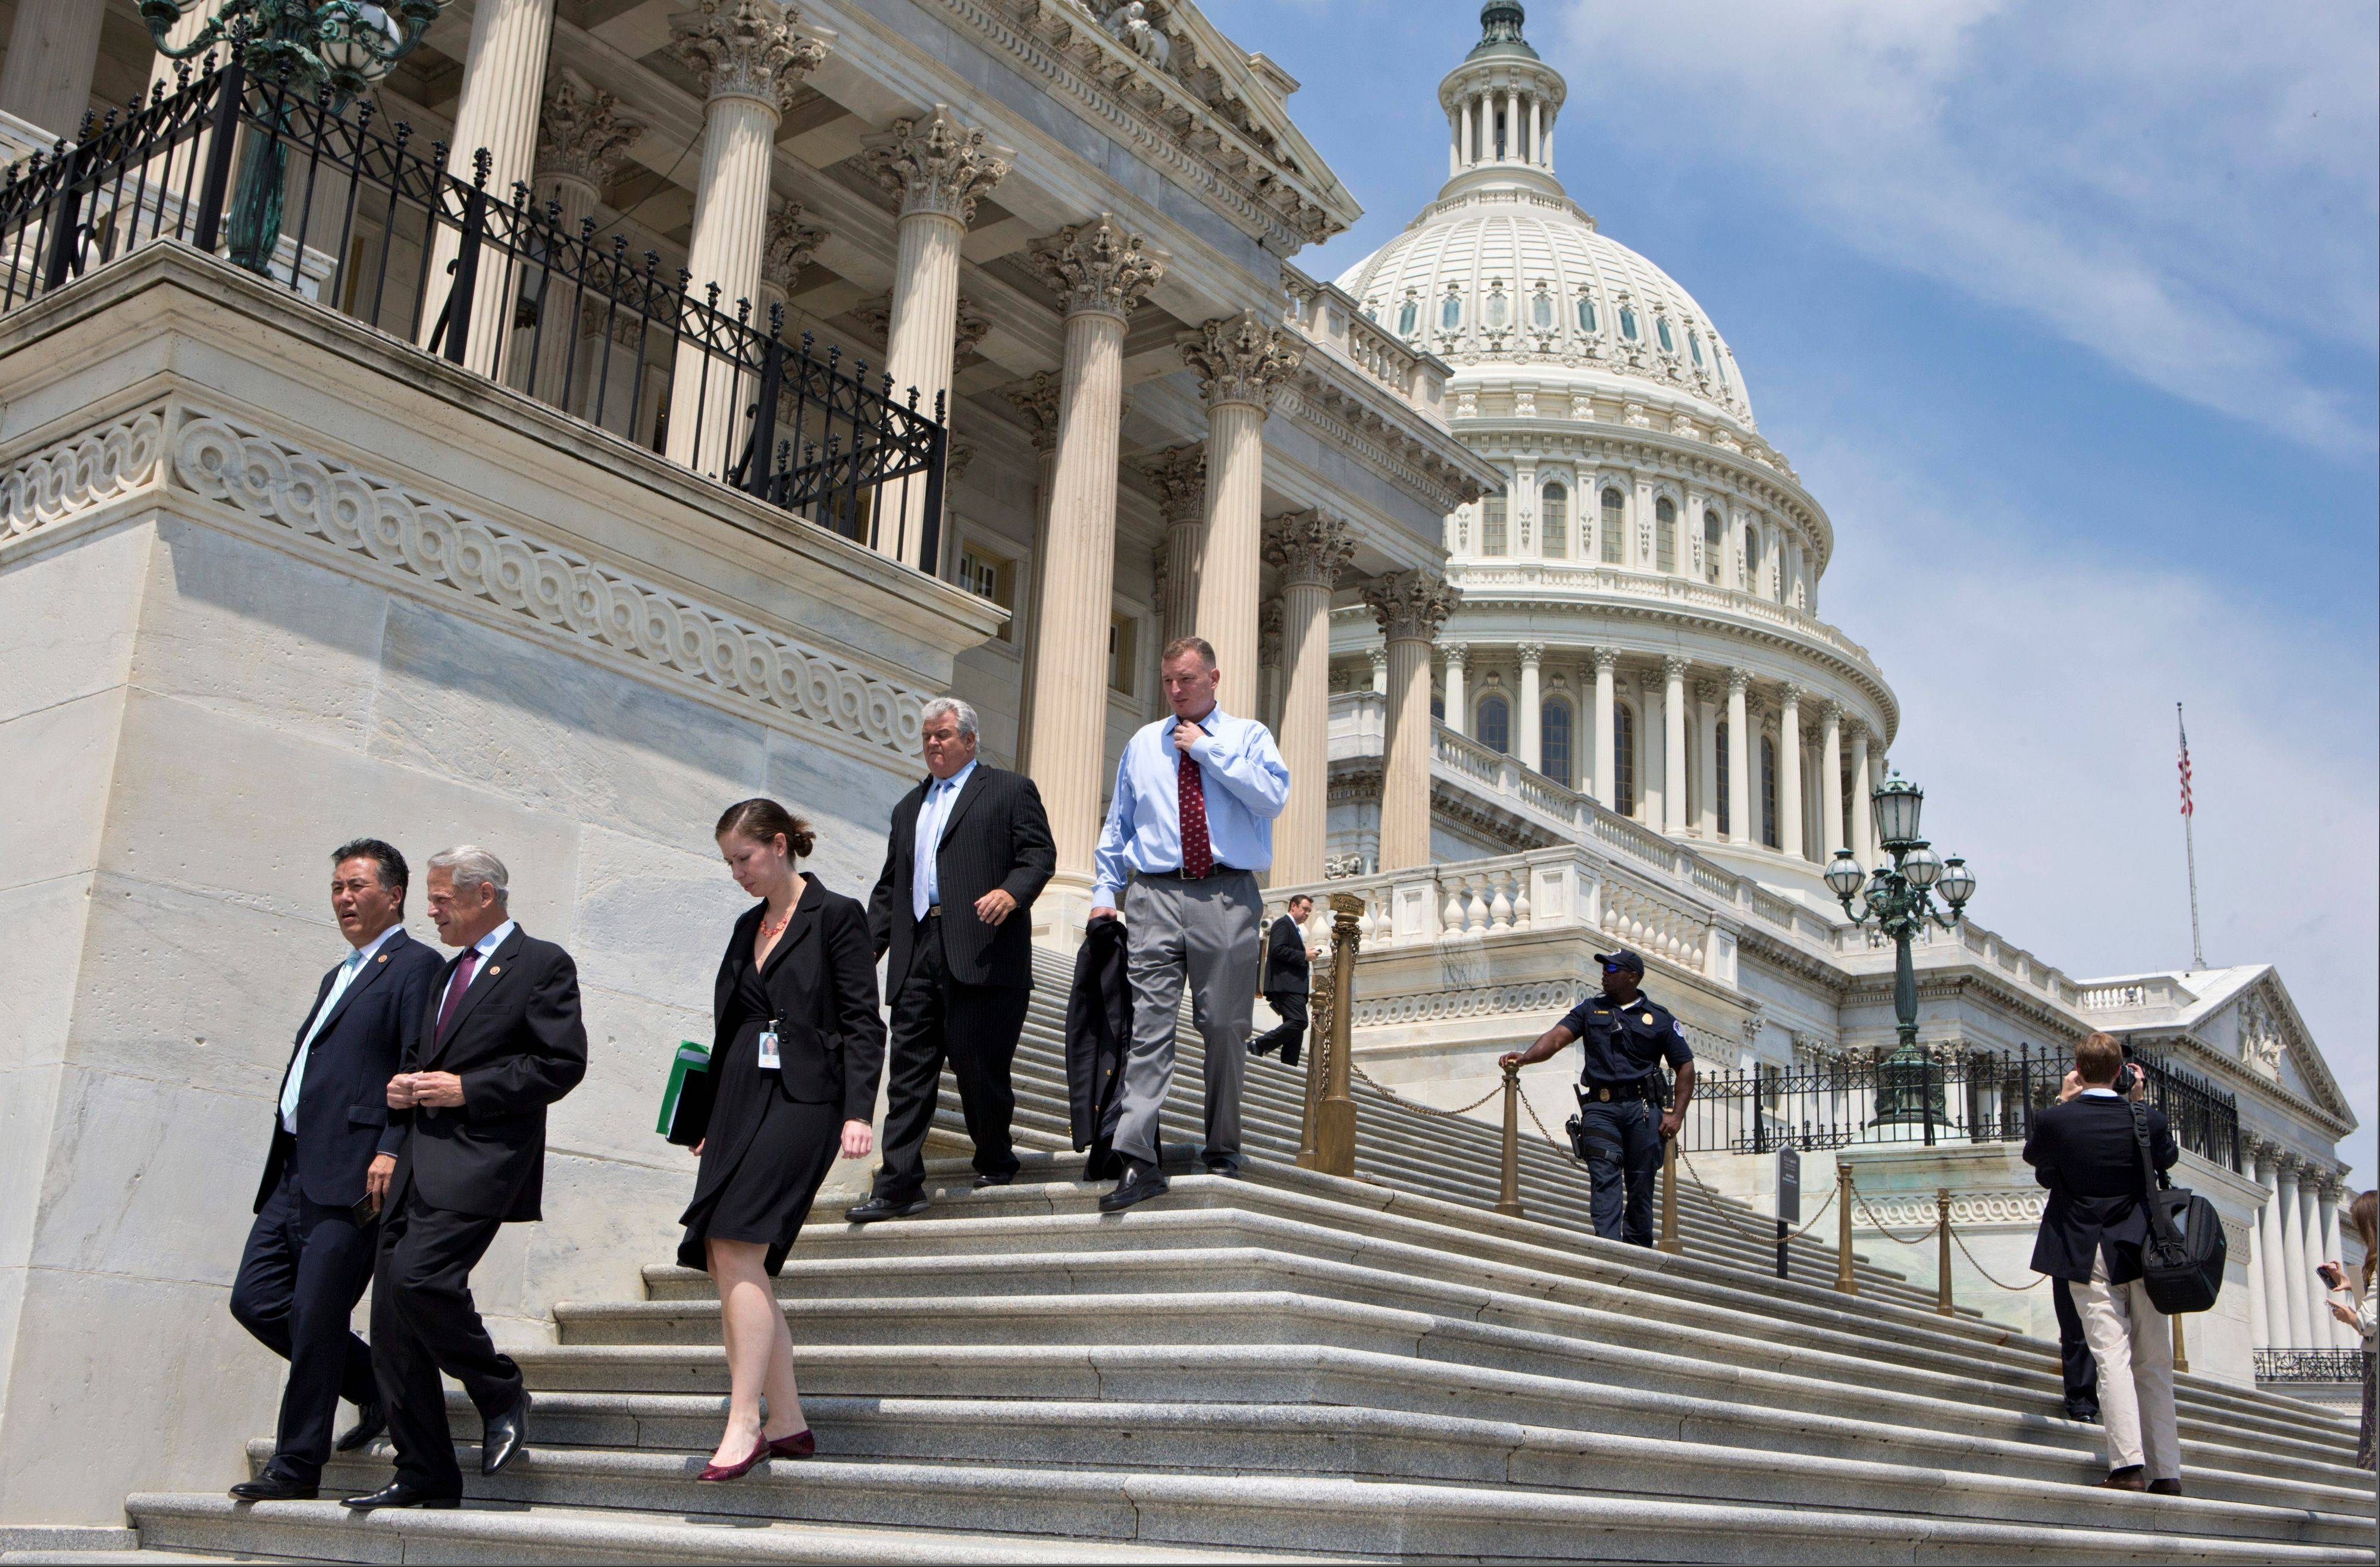 After final votes were cast, members of Congress walk down the steps of the House of Representatives Friday on Capitol Hill in Washington as they leave for a five-week recess.